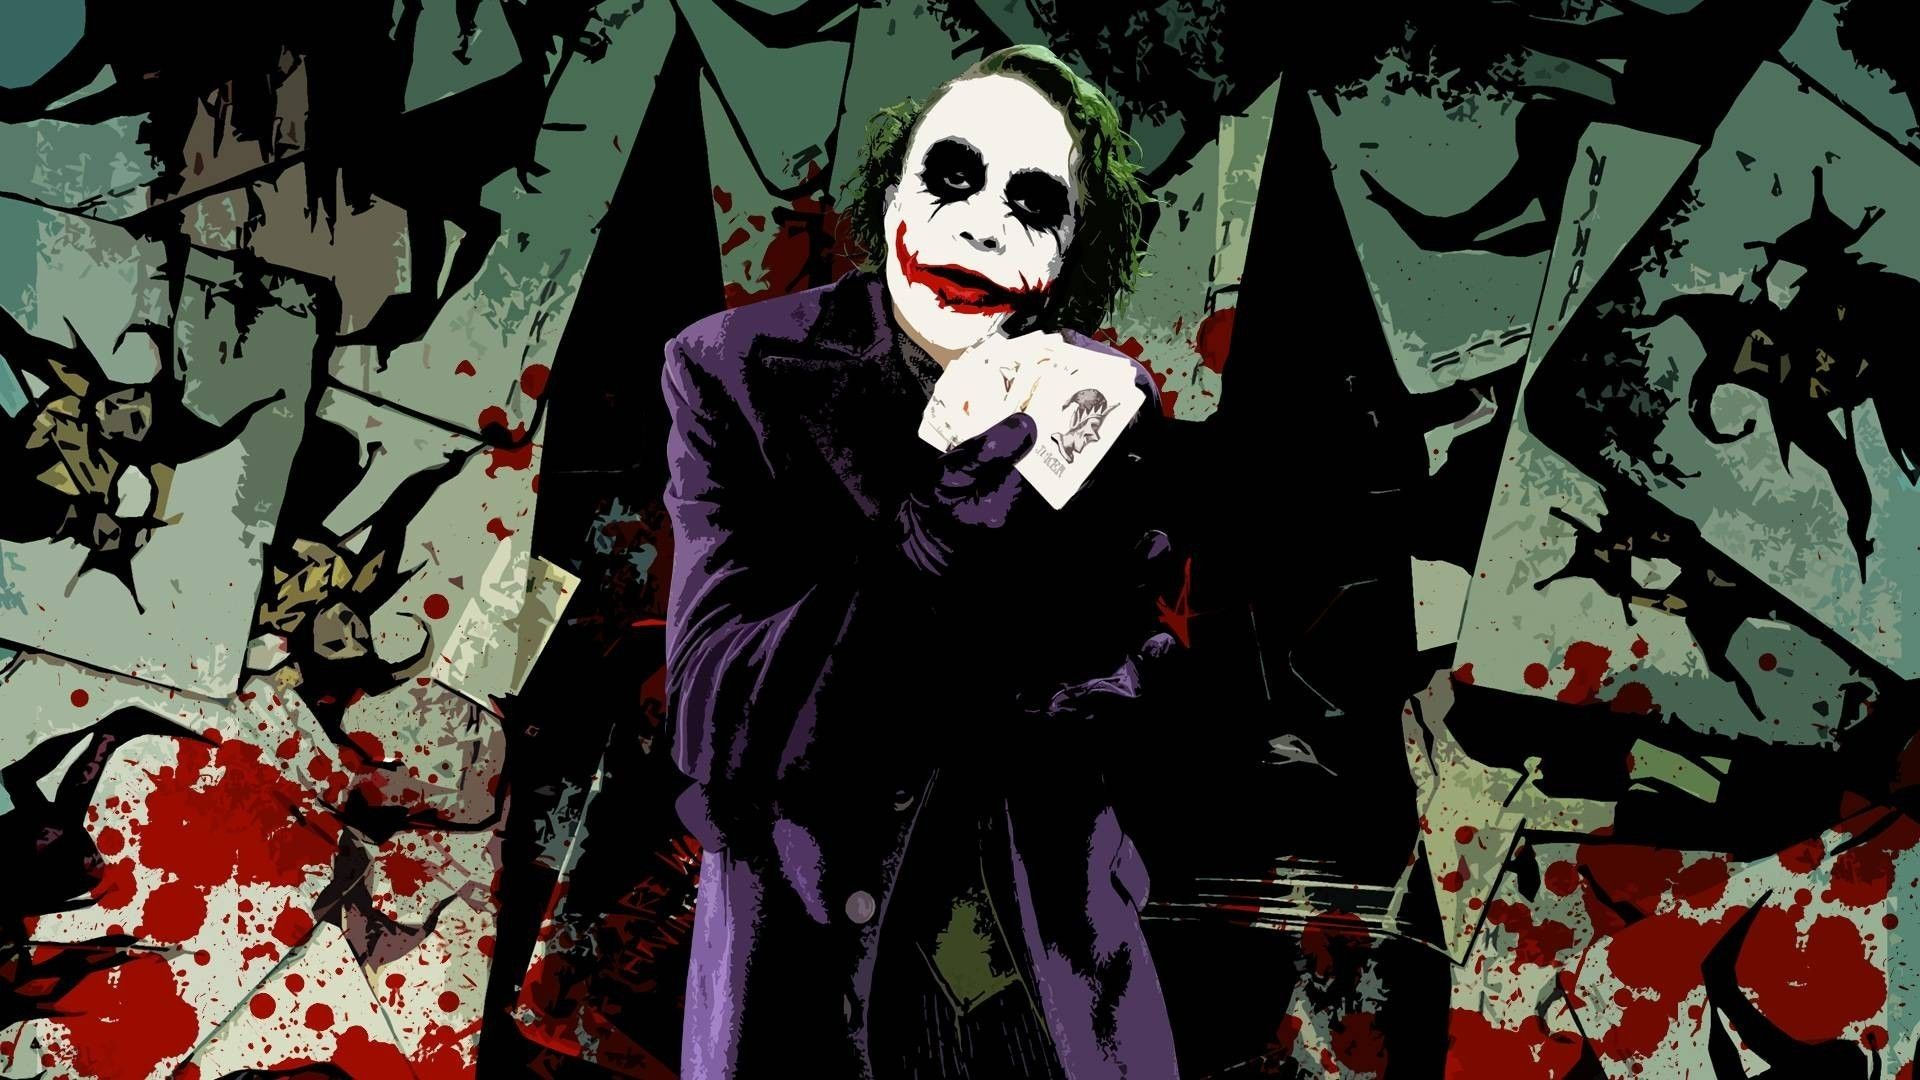 the joker wallpaper hd download 1600a—1200 the joker wallpaper 54 wallpapers